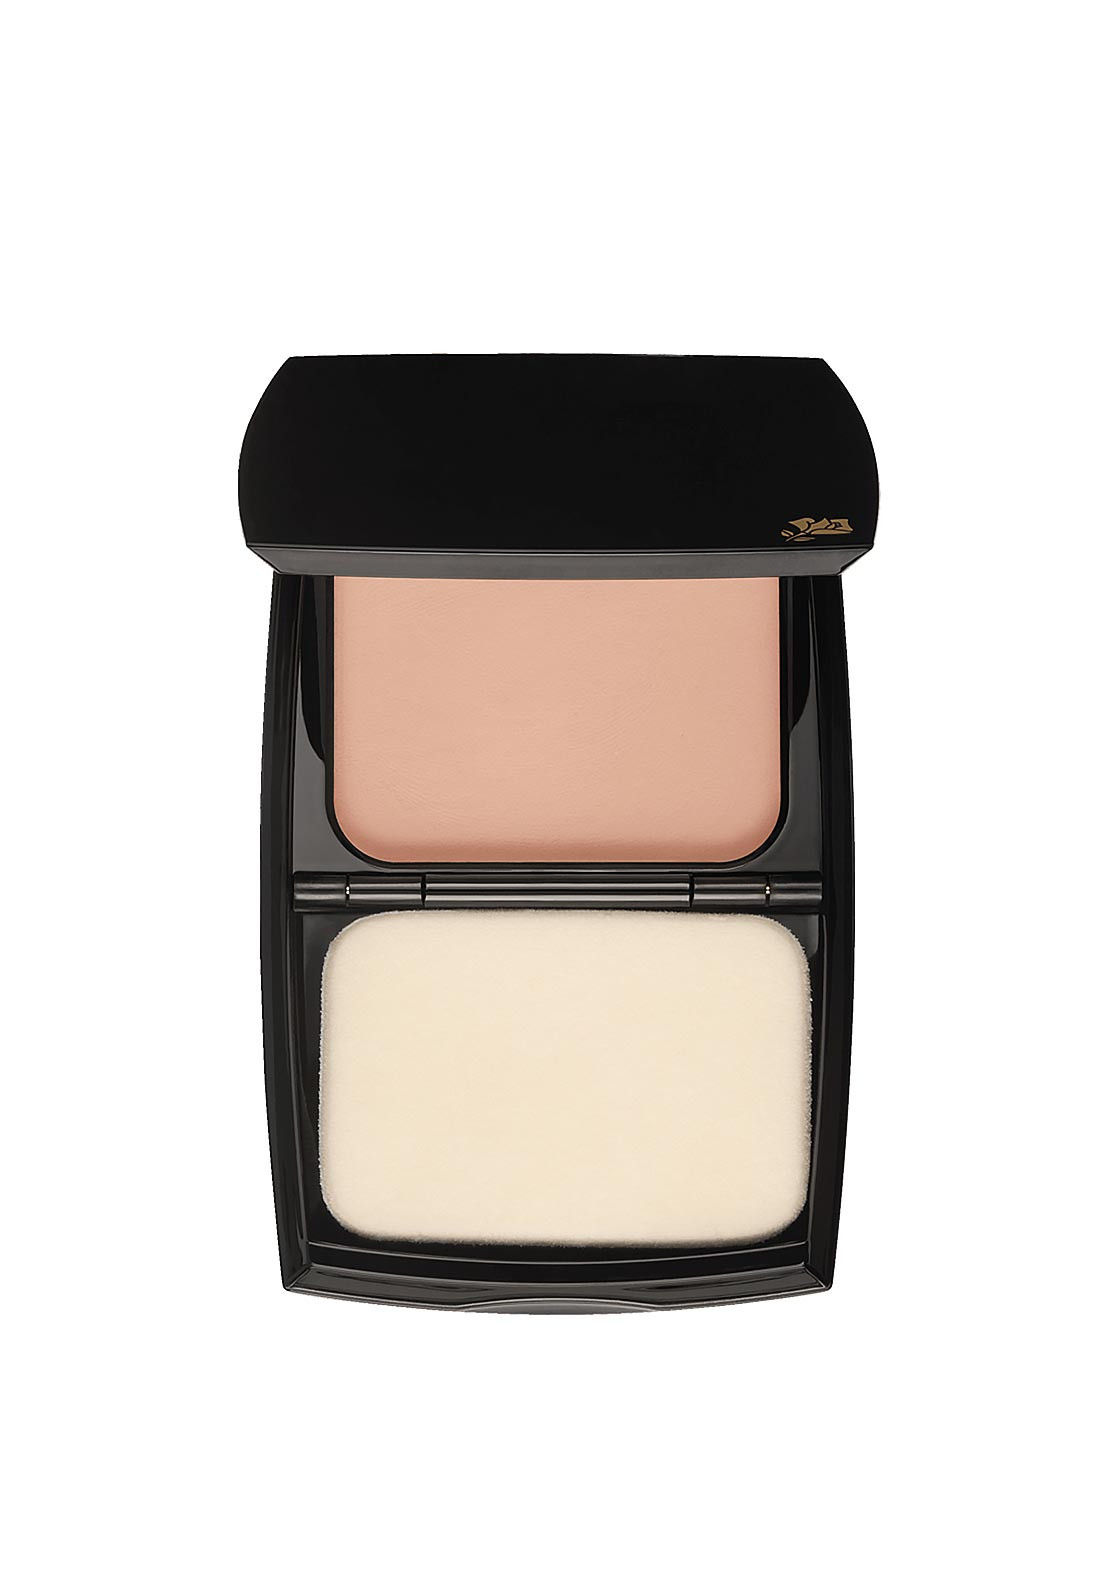 Lancome Teint Idole Ultra Compact Powder Foundation- 03